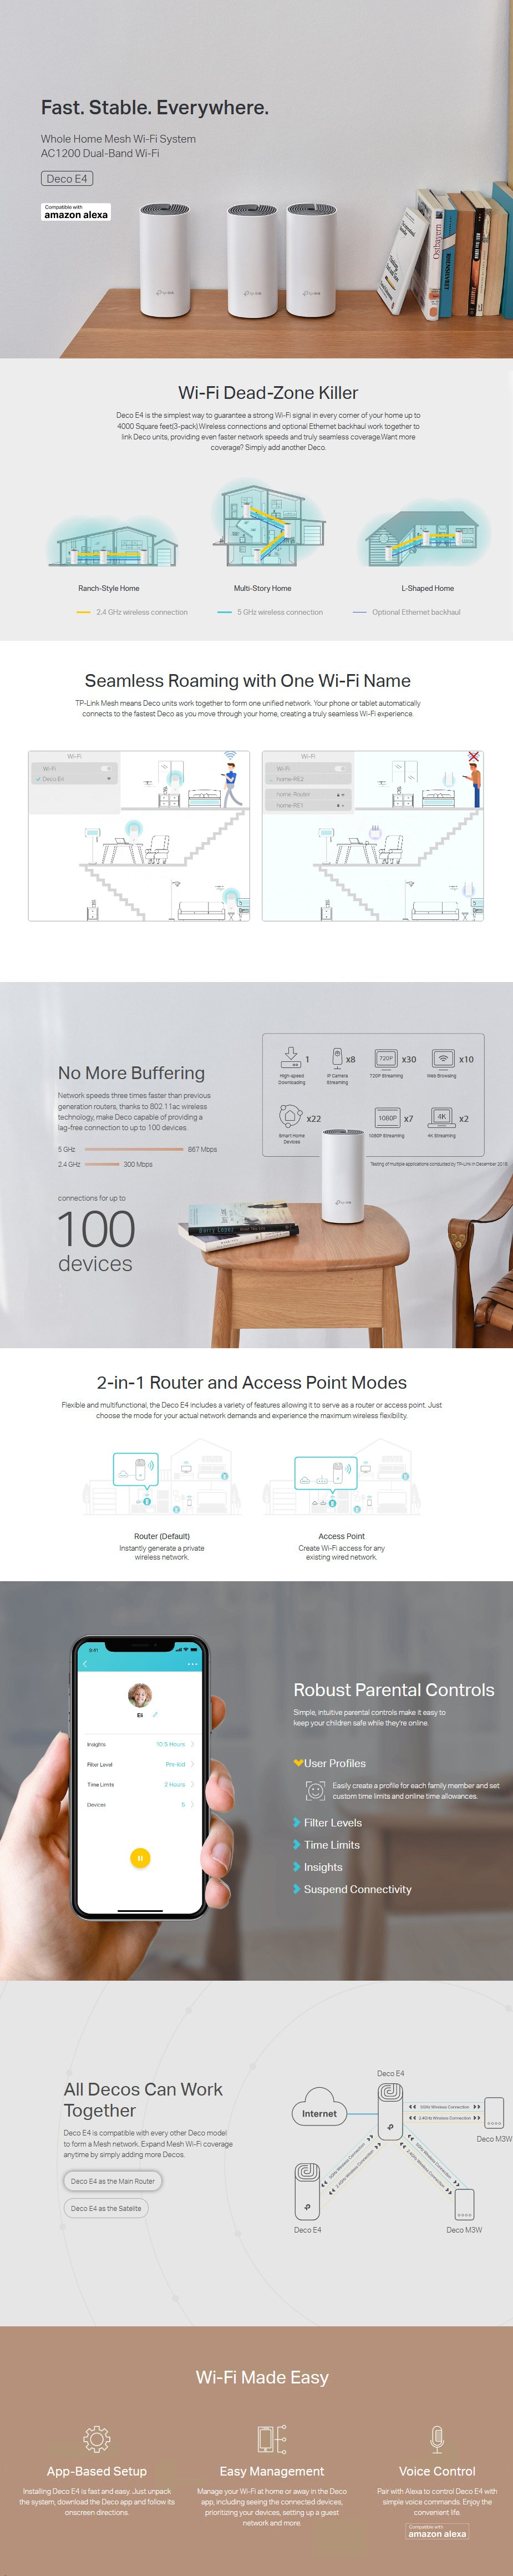 TP-Link Deco E4 AC1200 Whole Home Mesh Wi-Fi Router System - 3 Pack - Overview 1